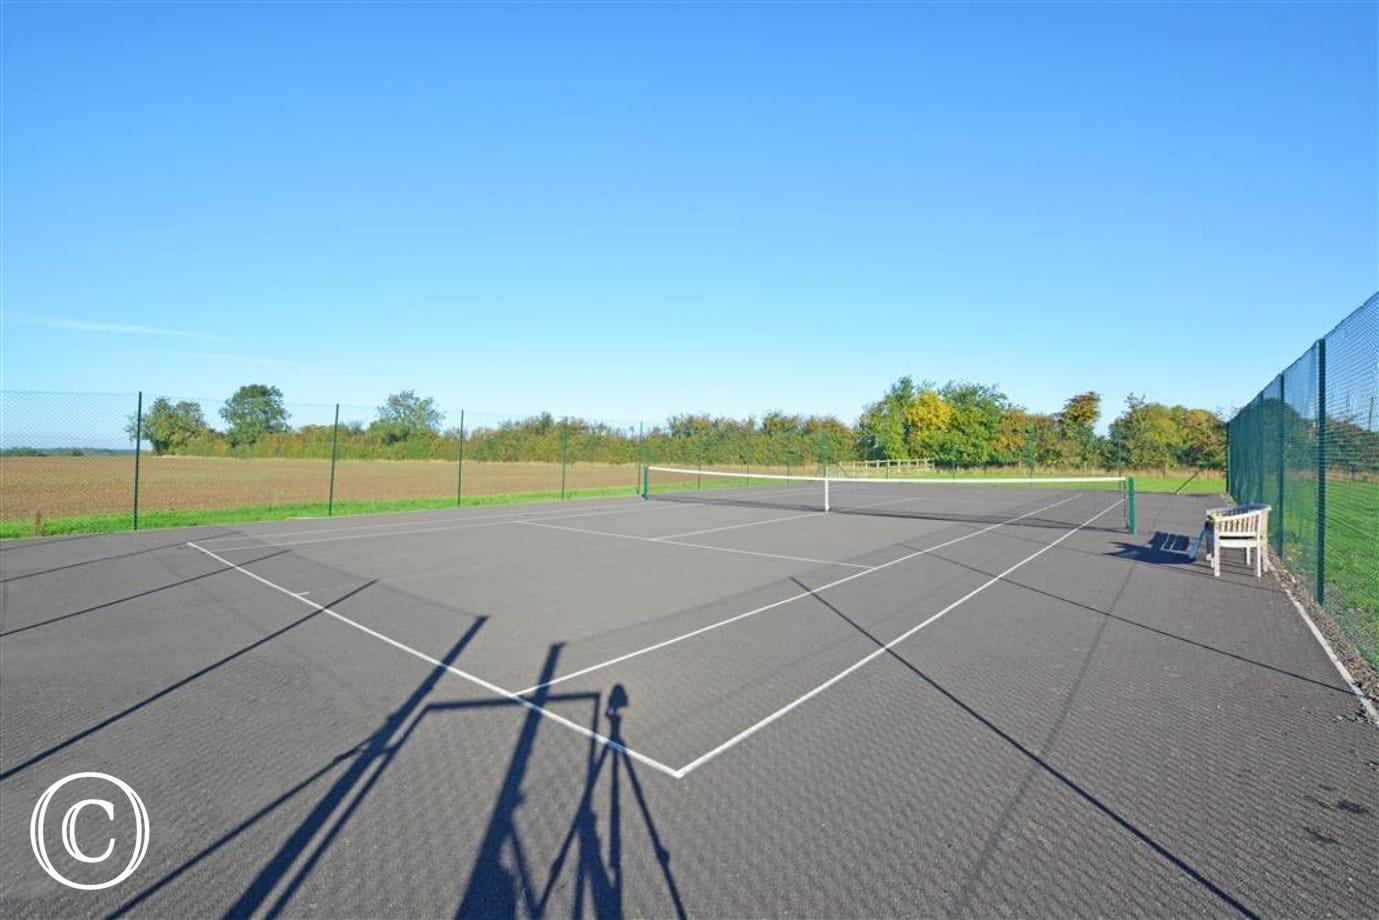 Tennis Court View 1